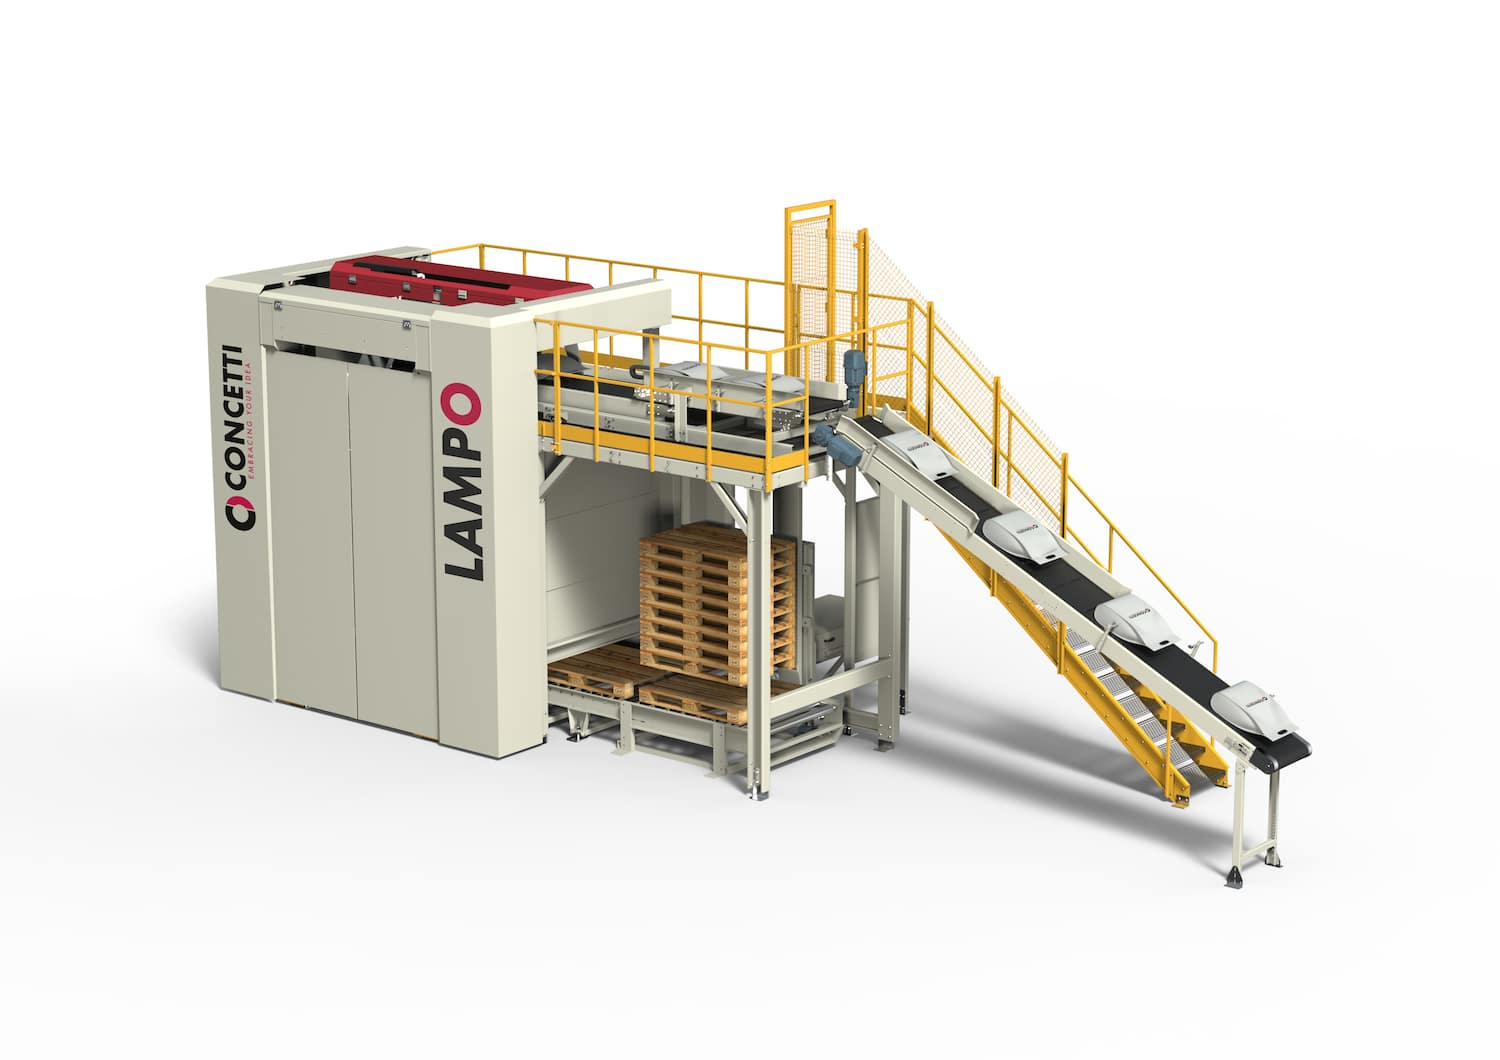 """New Concetti Palletiser For Bags, Efficient Logistics In A """"Lampo"""""""